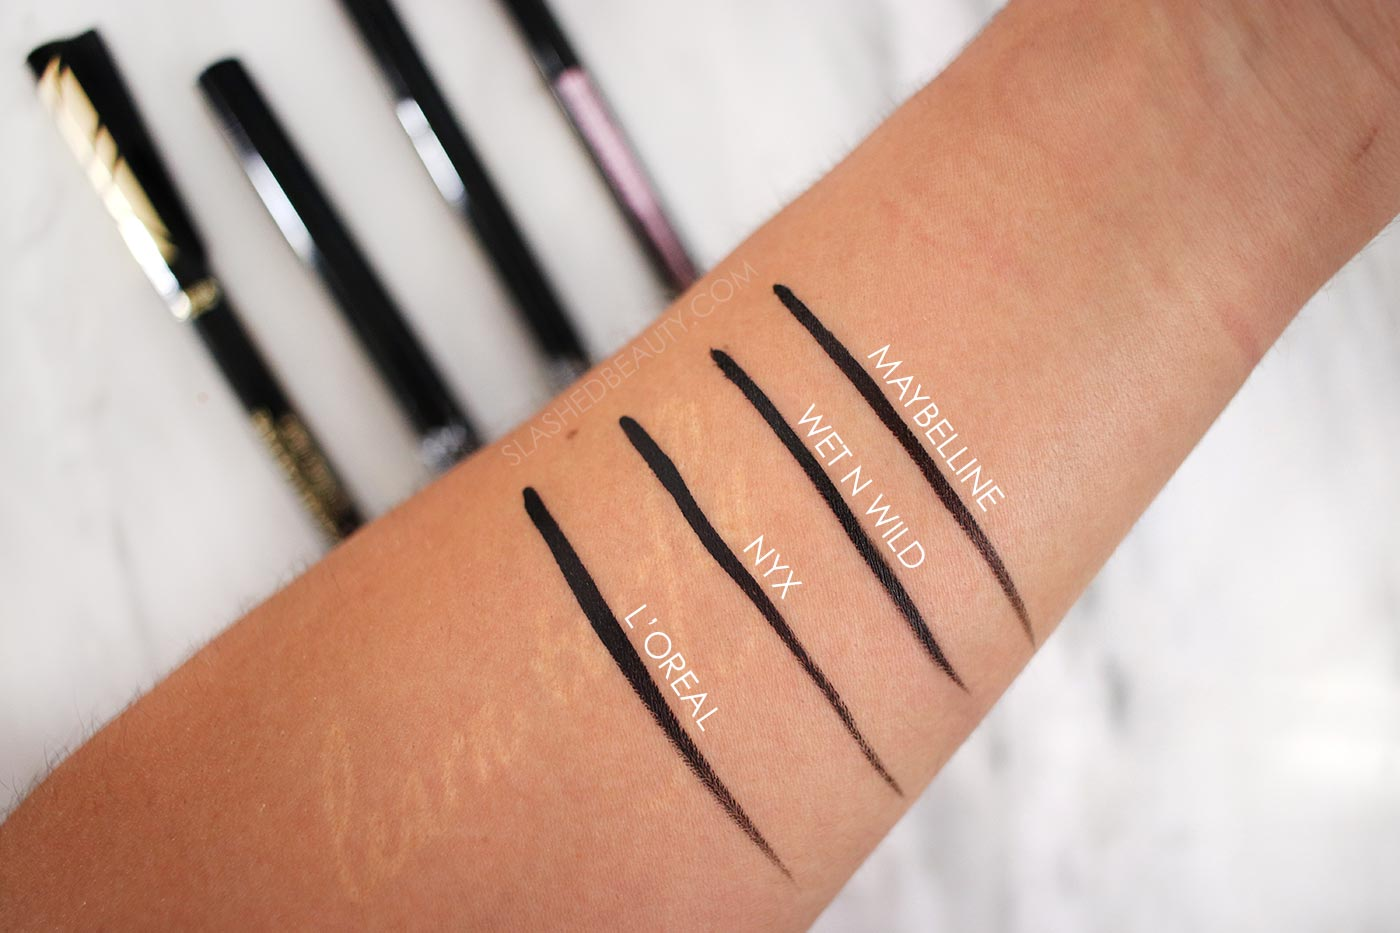 Long Lasting Drugstore Liquid Eyeliner Swatches | The 4 Best Drugstore Liquid Eyeliners | Slashed Beauty